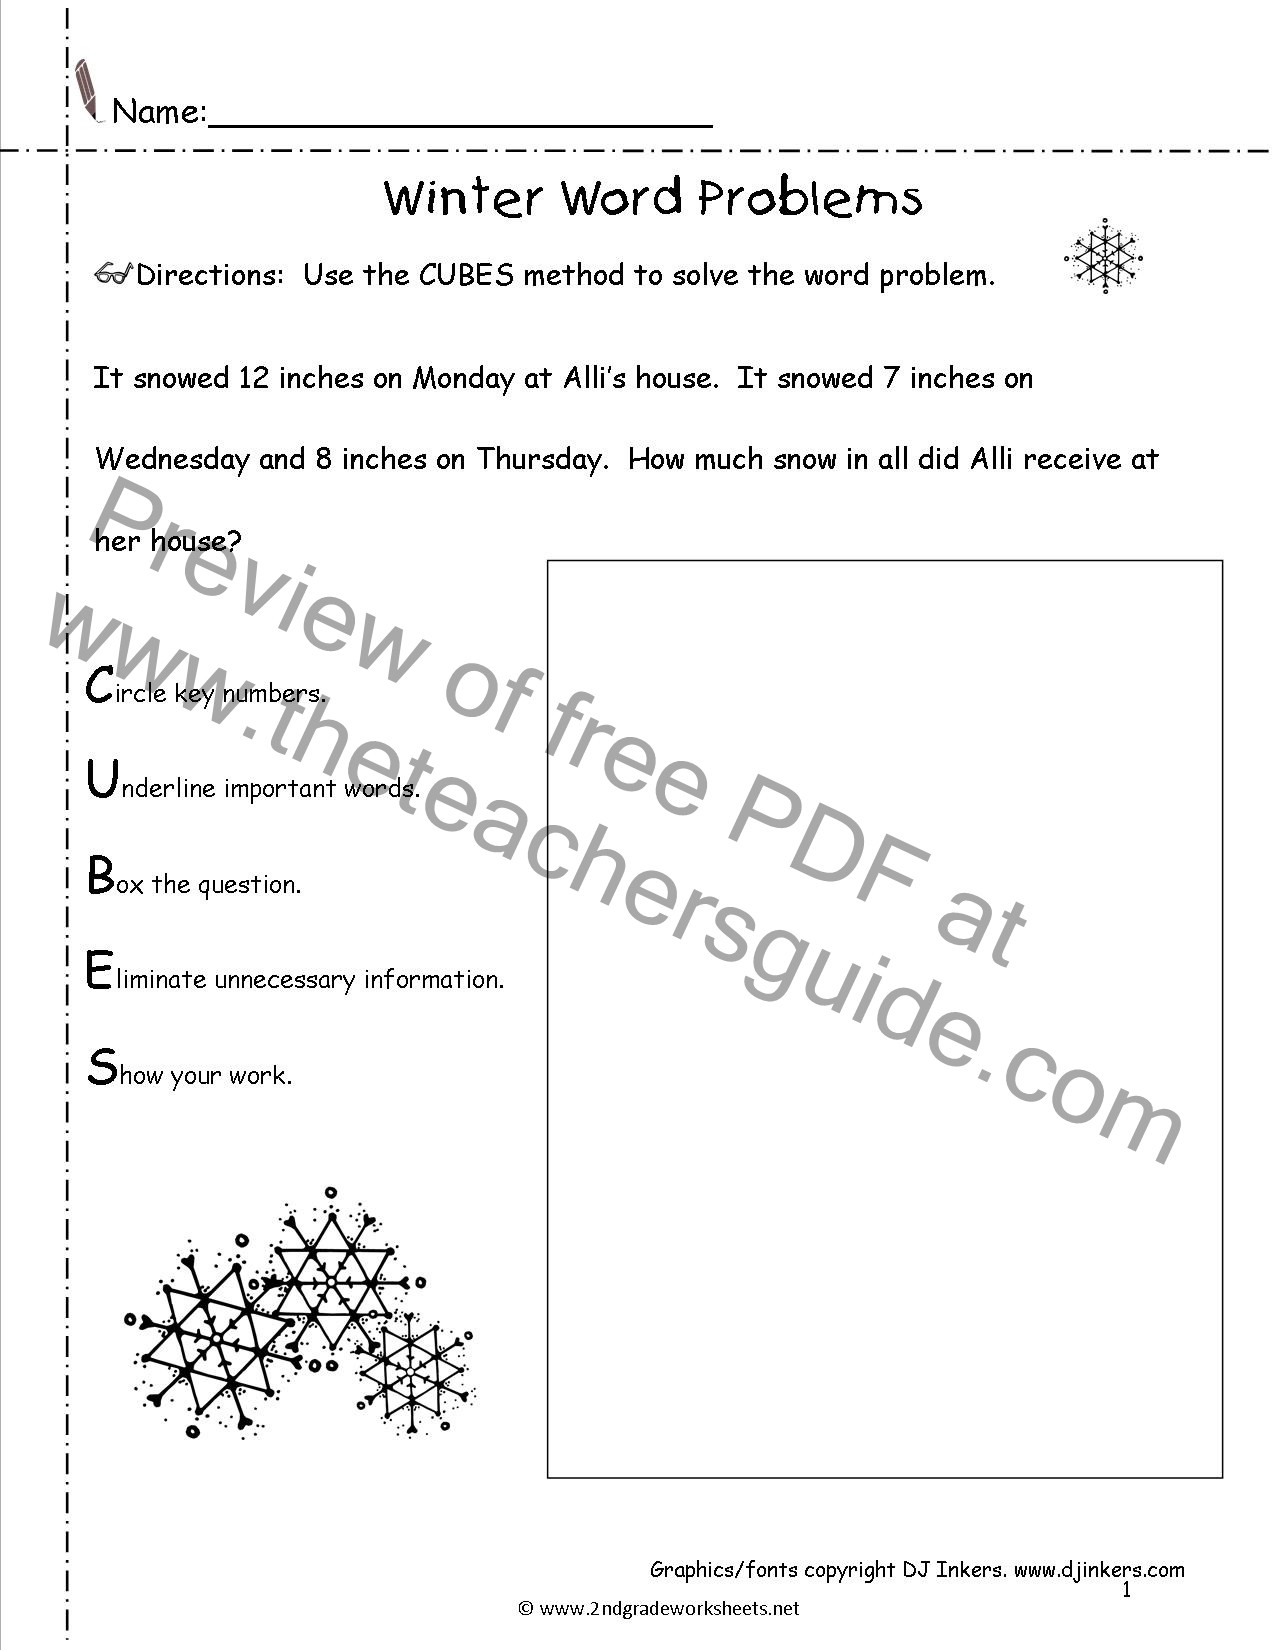 Winter Worksheets for Second Grade Winter Lesson Plans themes Printouts Crafts